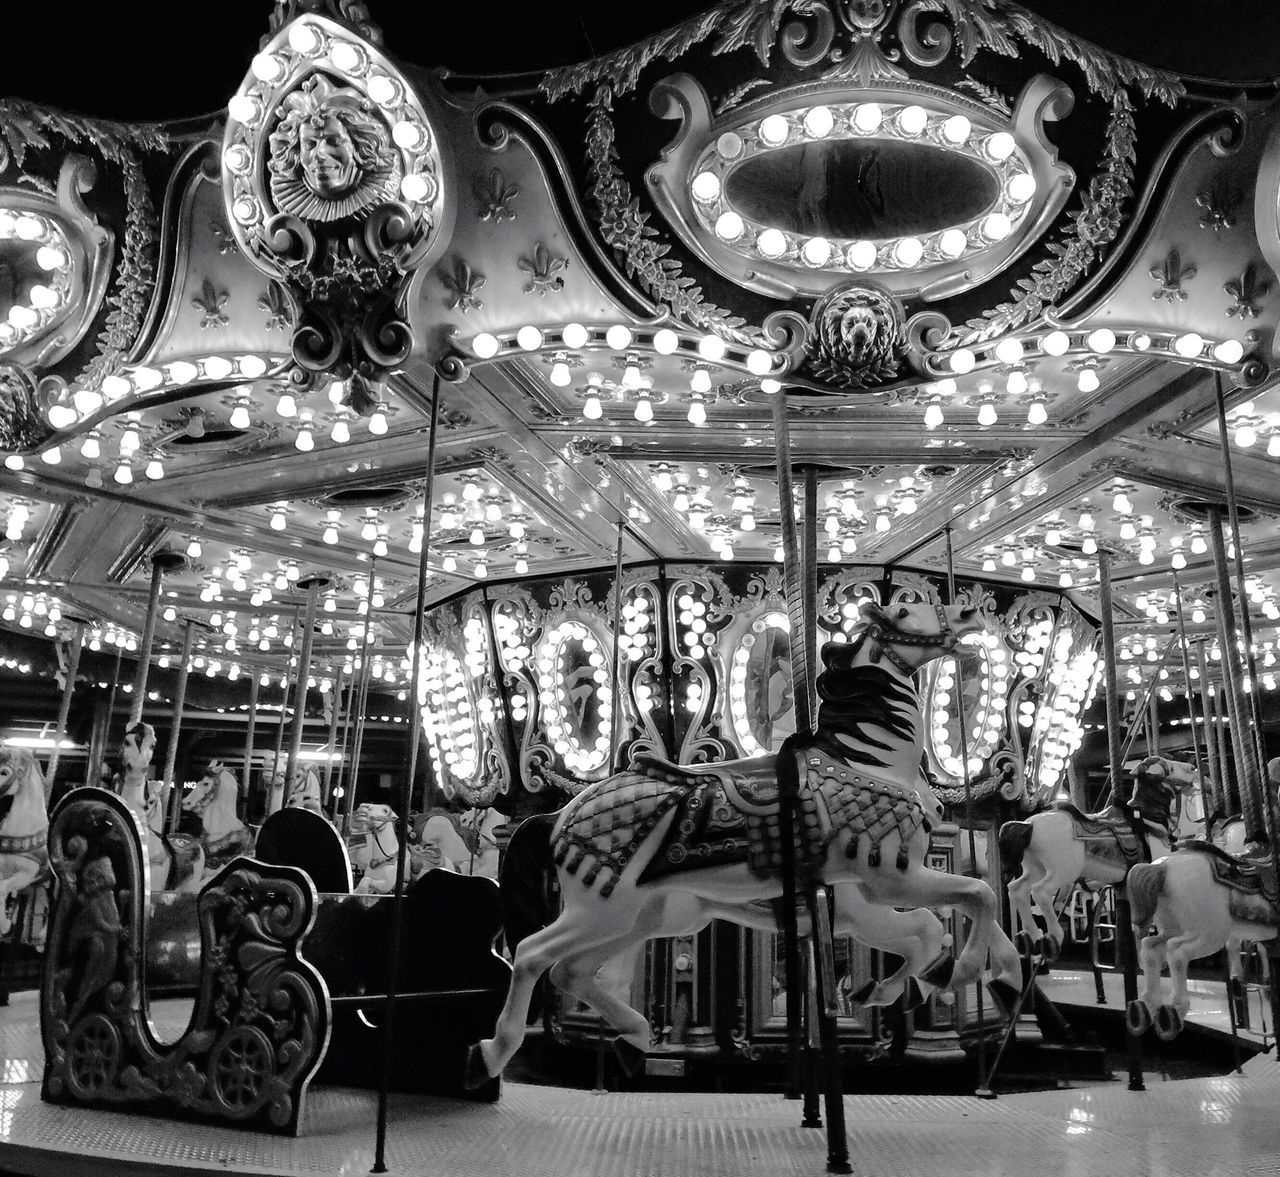 Amusement Park Carousel Arts Culture And Entertainment Amusement Park Ride Carousel Horses No People Day Day Out With Family Horses Lights And Shadows